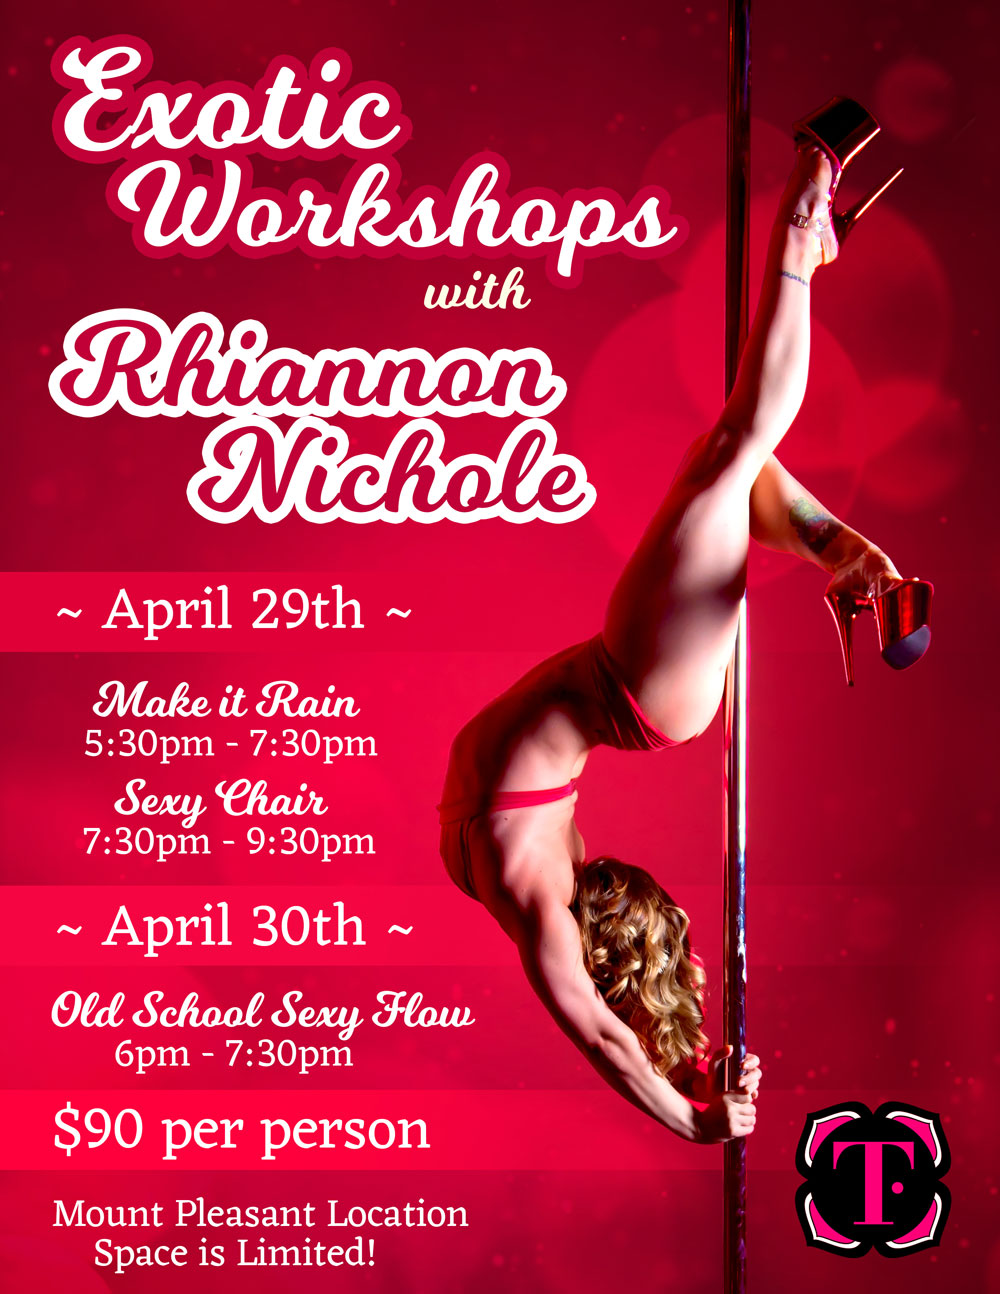 Exotic Workshops with Rhiannan Nichole